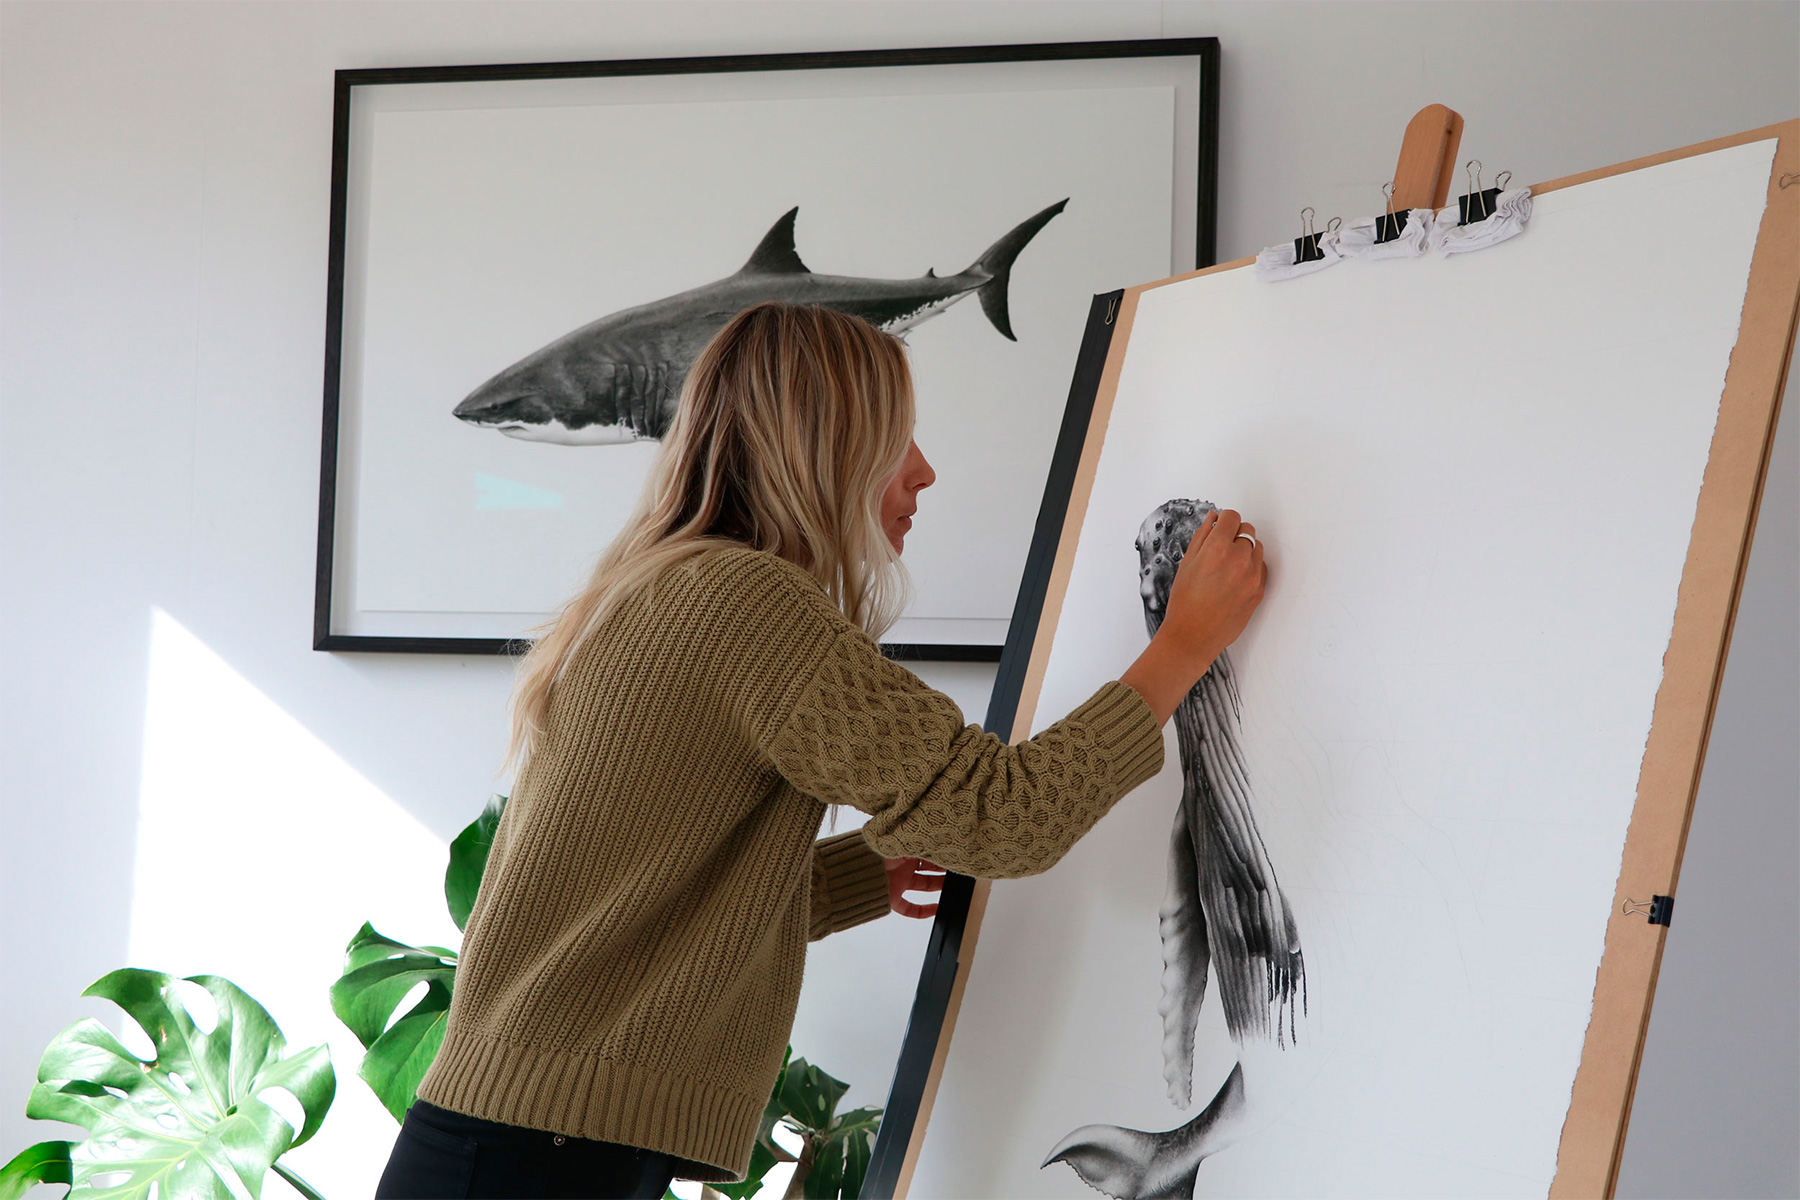 australian artist brittany march at work in her studio